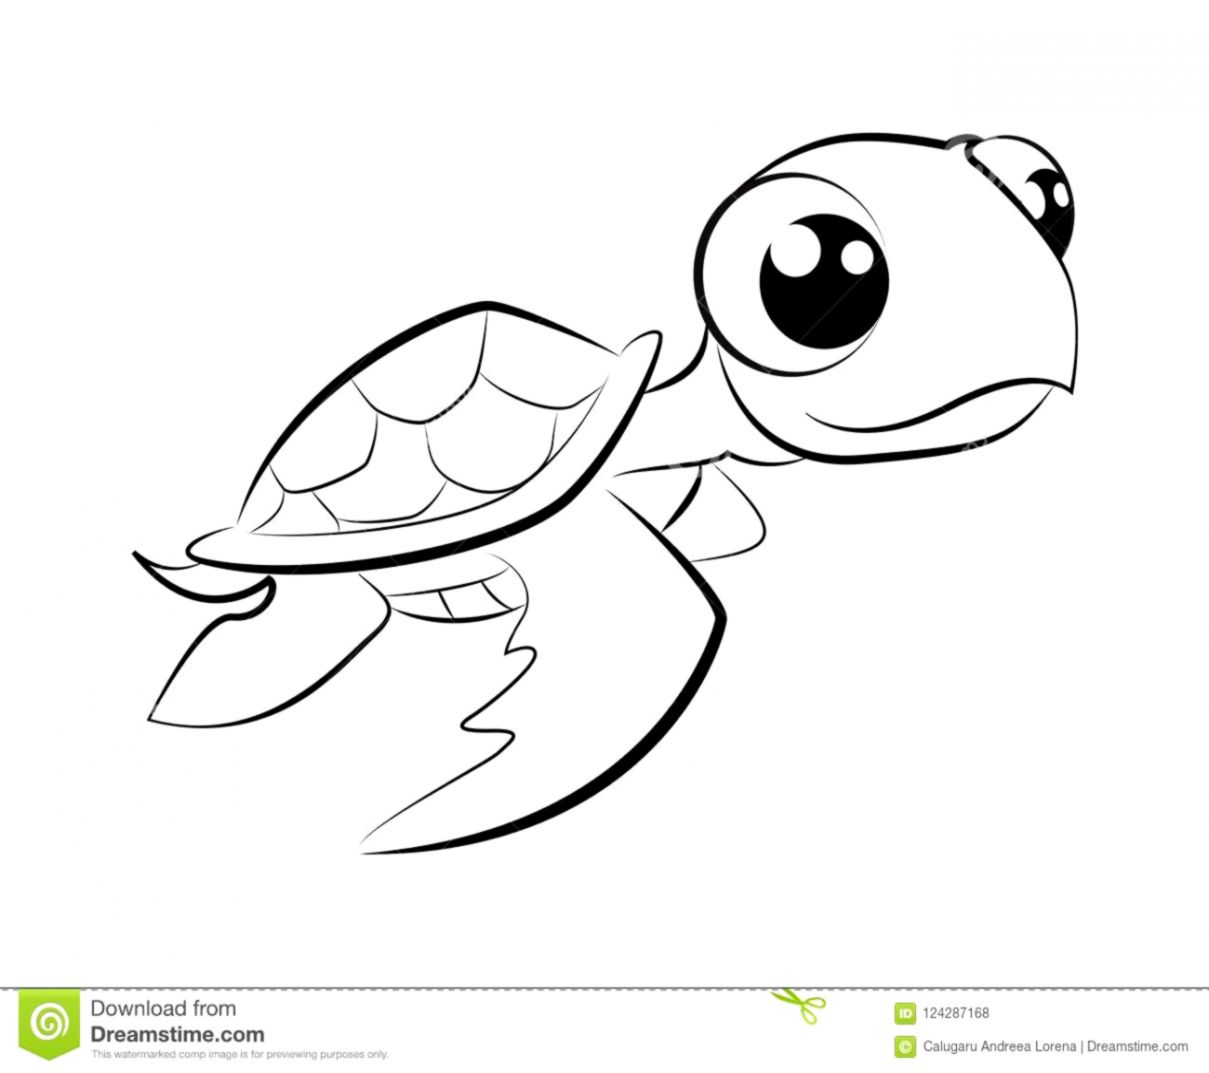 baby sea turtle coloring page baby sea turtle drawing at getdrawings free download baby sea page turtle coloring